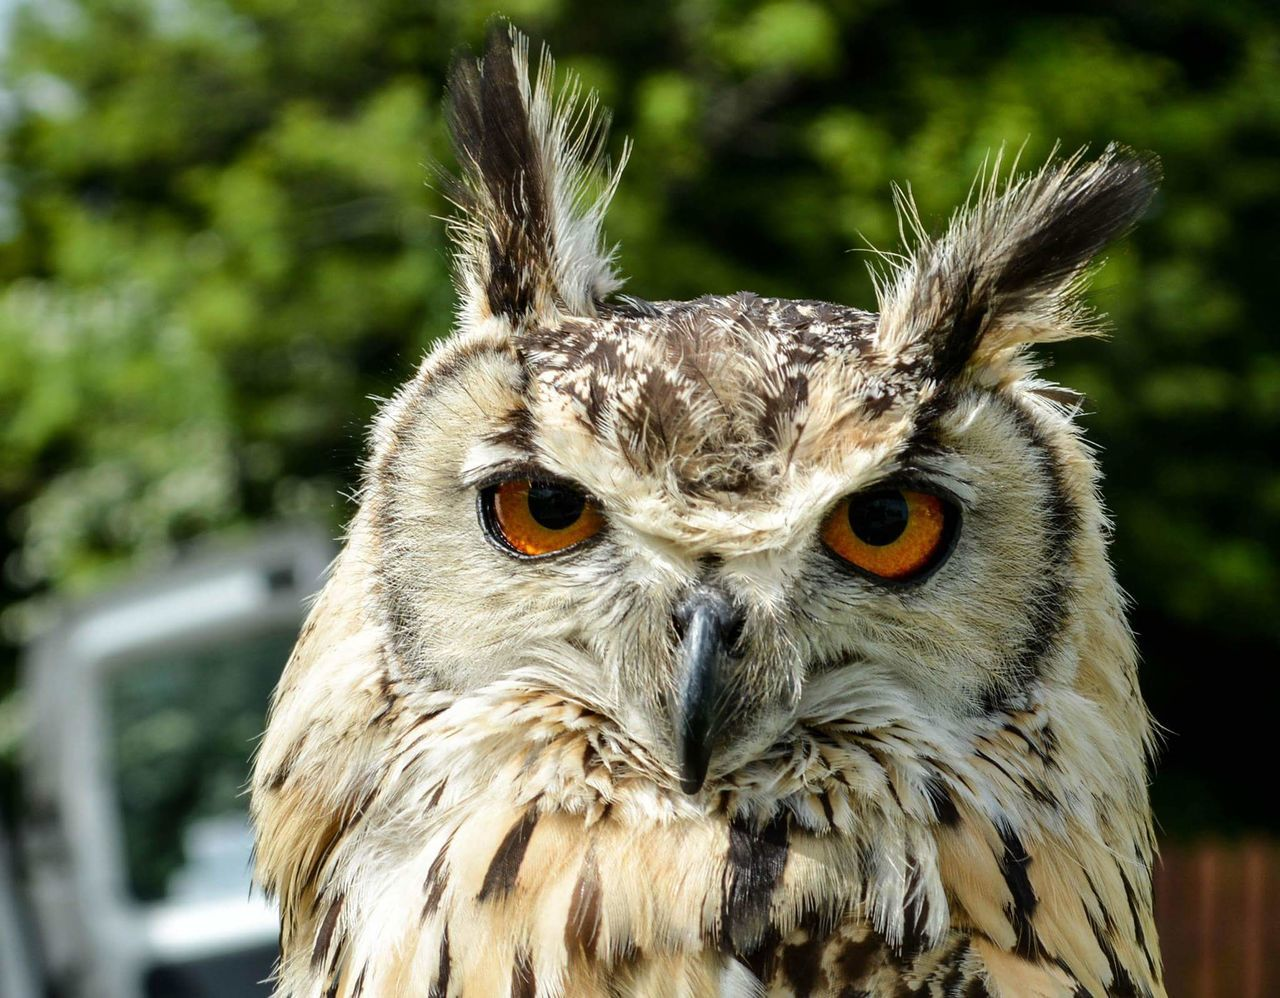 One Animal Owl Animal Themes Animal Bird Outdoors Day Close-up Nature Beautifull Cute Loveit NaturePictureoftheday Brown Beauty In Nature Picutre Owl Photography Owl Eyes First Eyeem Photo EyeEmNewHere EyeEmNewHere